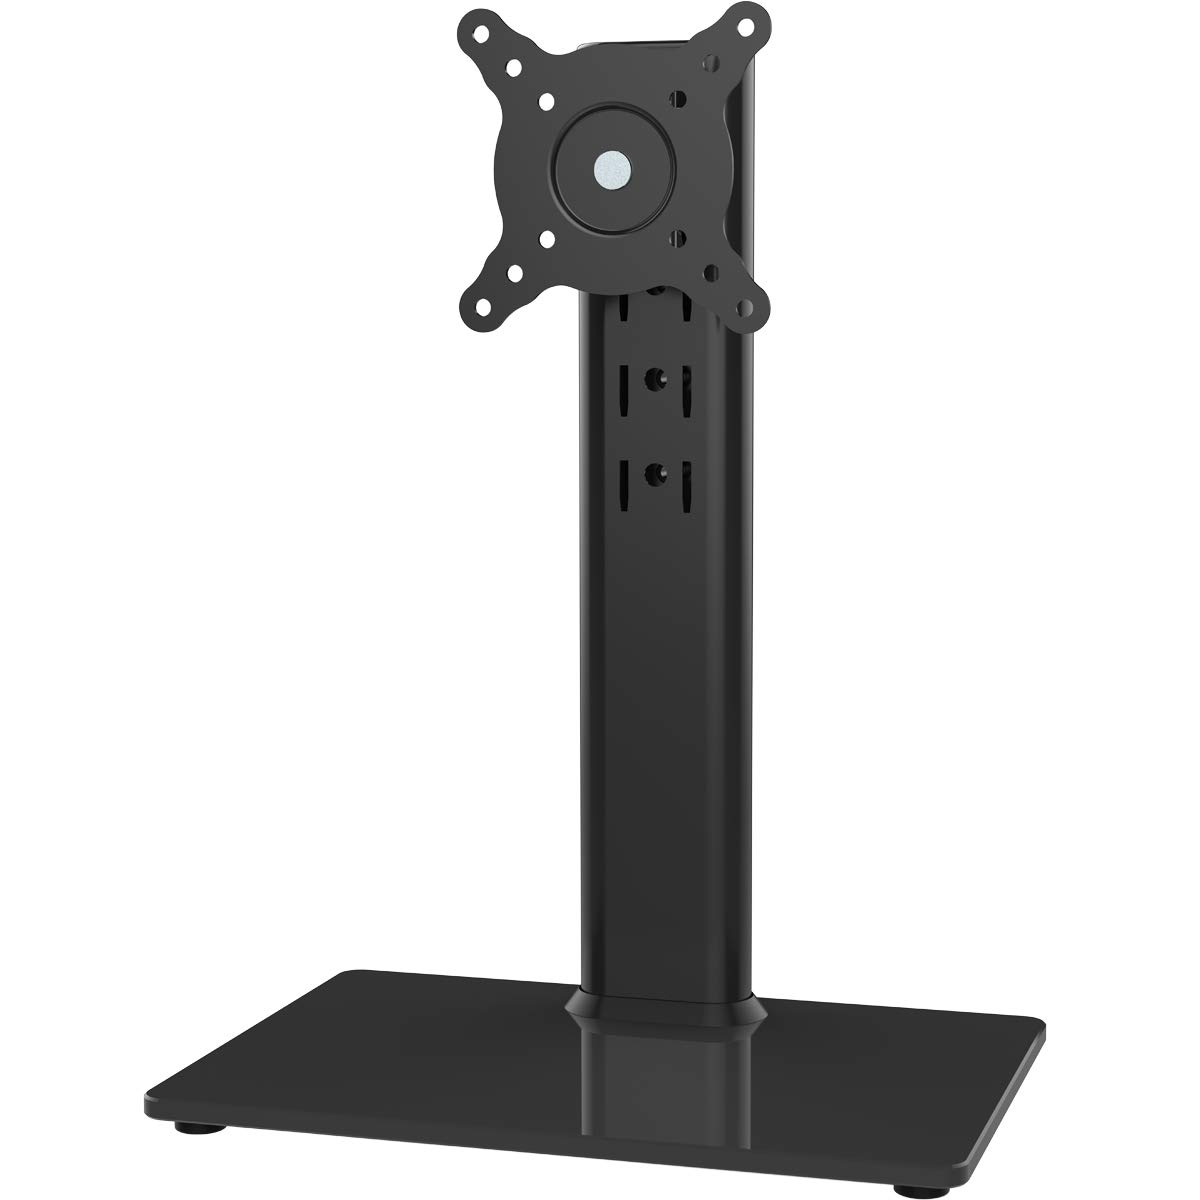 Single LCD Computer Monitor Free-Standing Desk Stand Riser for 13 inch to 32 inch Screen with Swivel, Height Adjustable, Rotation, Holds One (1) Screen up to 77Lbs(HT05B-001) by Hemudu (Image #1)